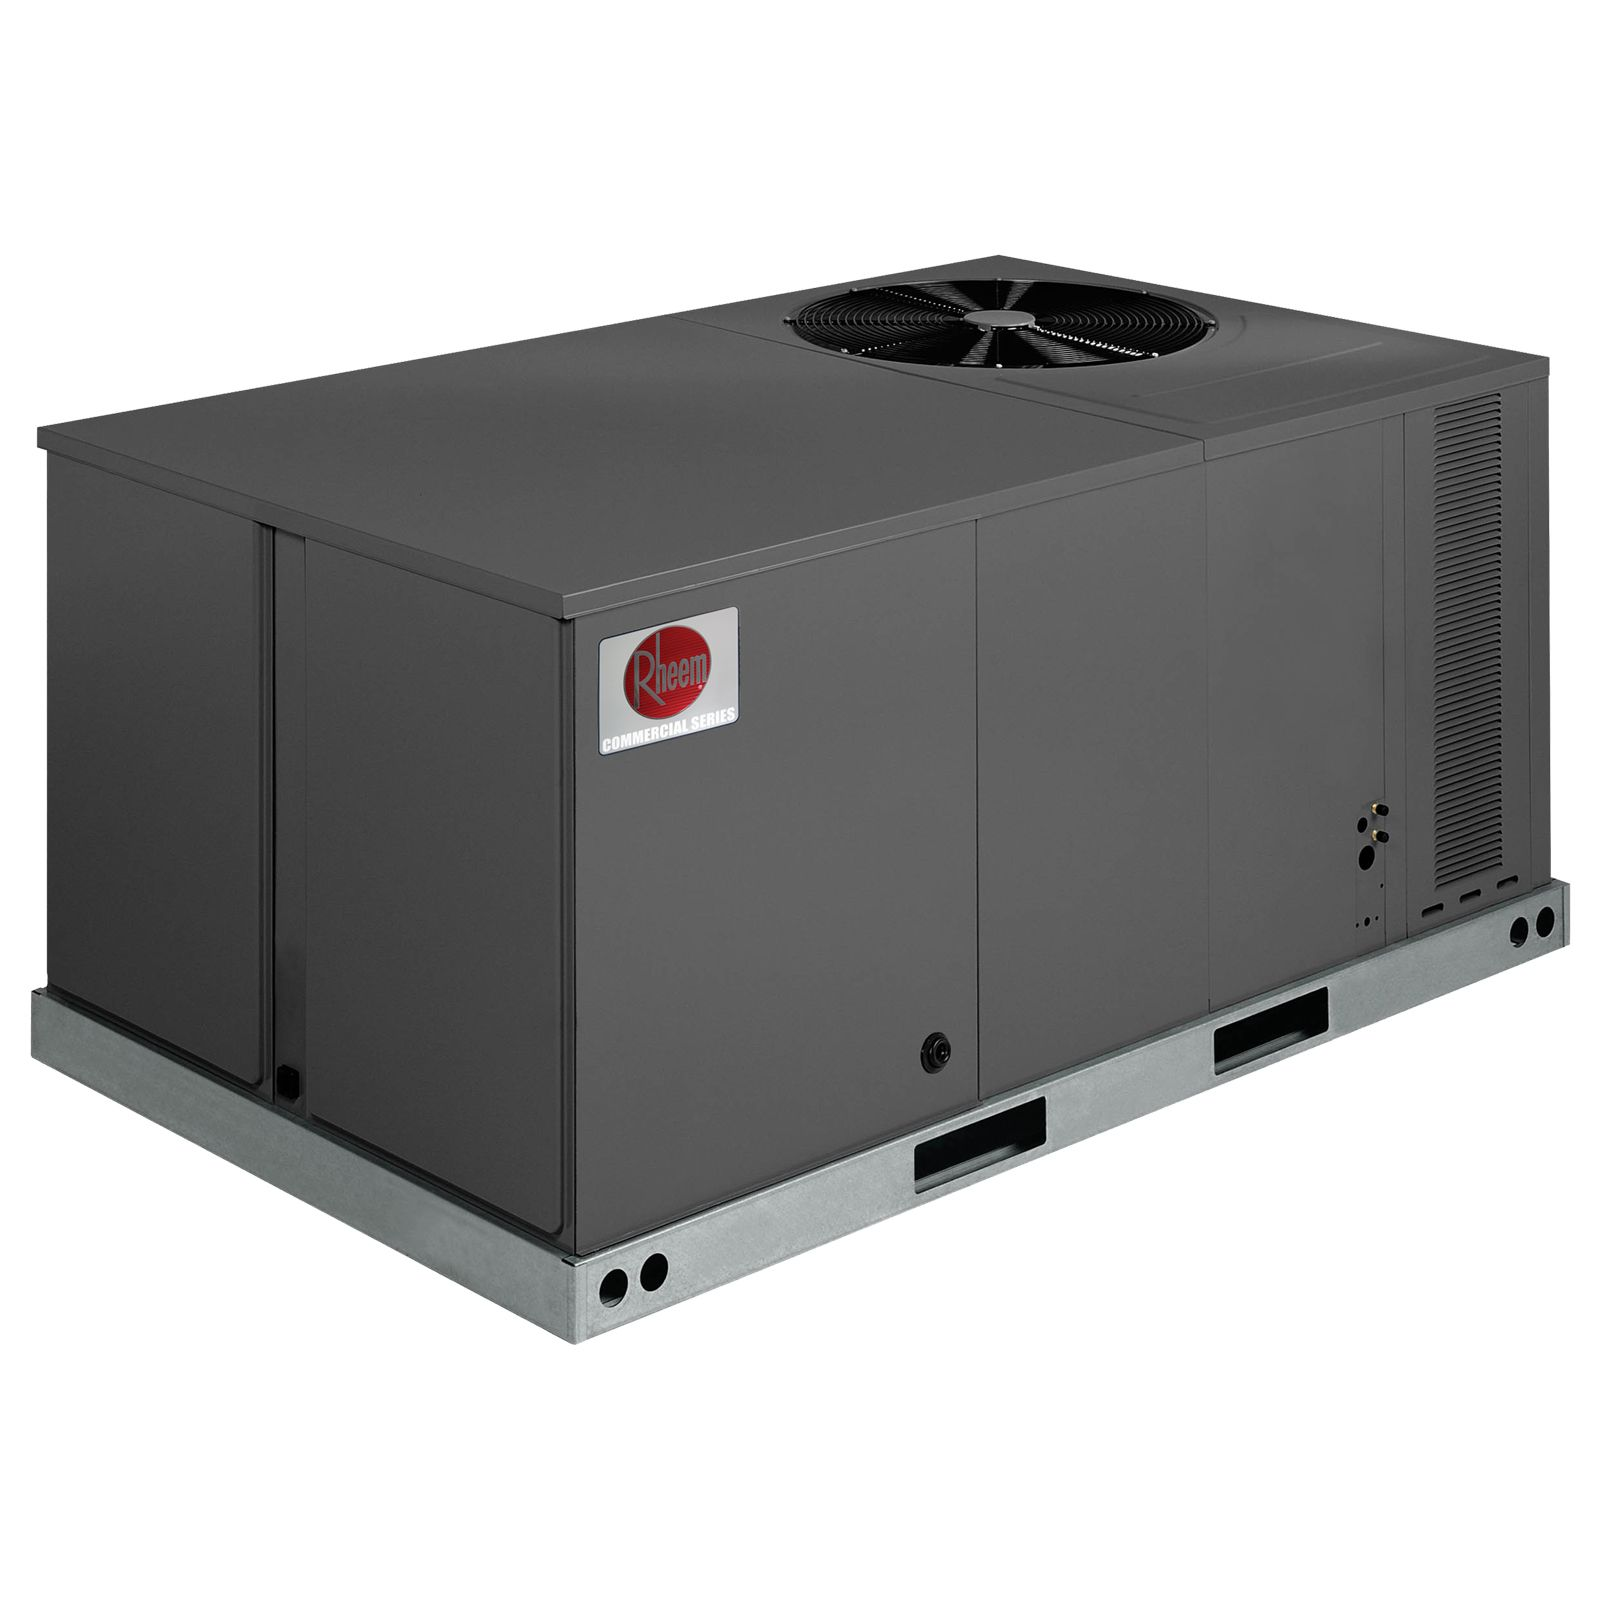 Rheem RLPN-A048JK000 - Commercial Classic 4 Ton 14 SEER Package Air Conditioner, 208-230 Volt, 1 Phase, 60 Hz, R410A